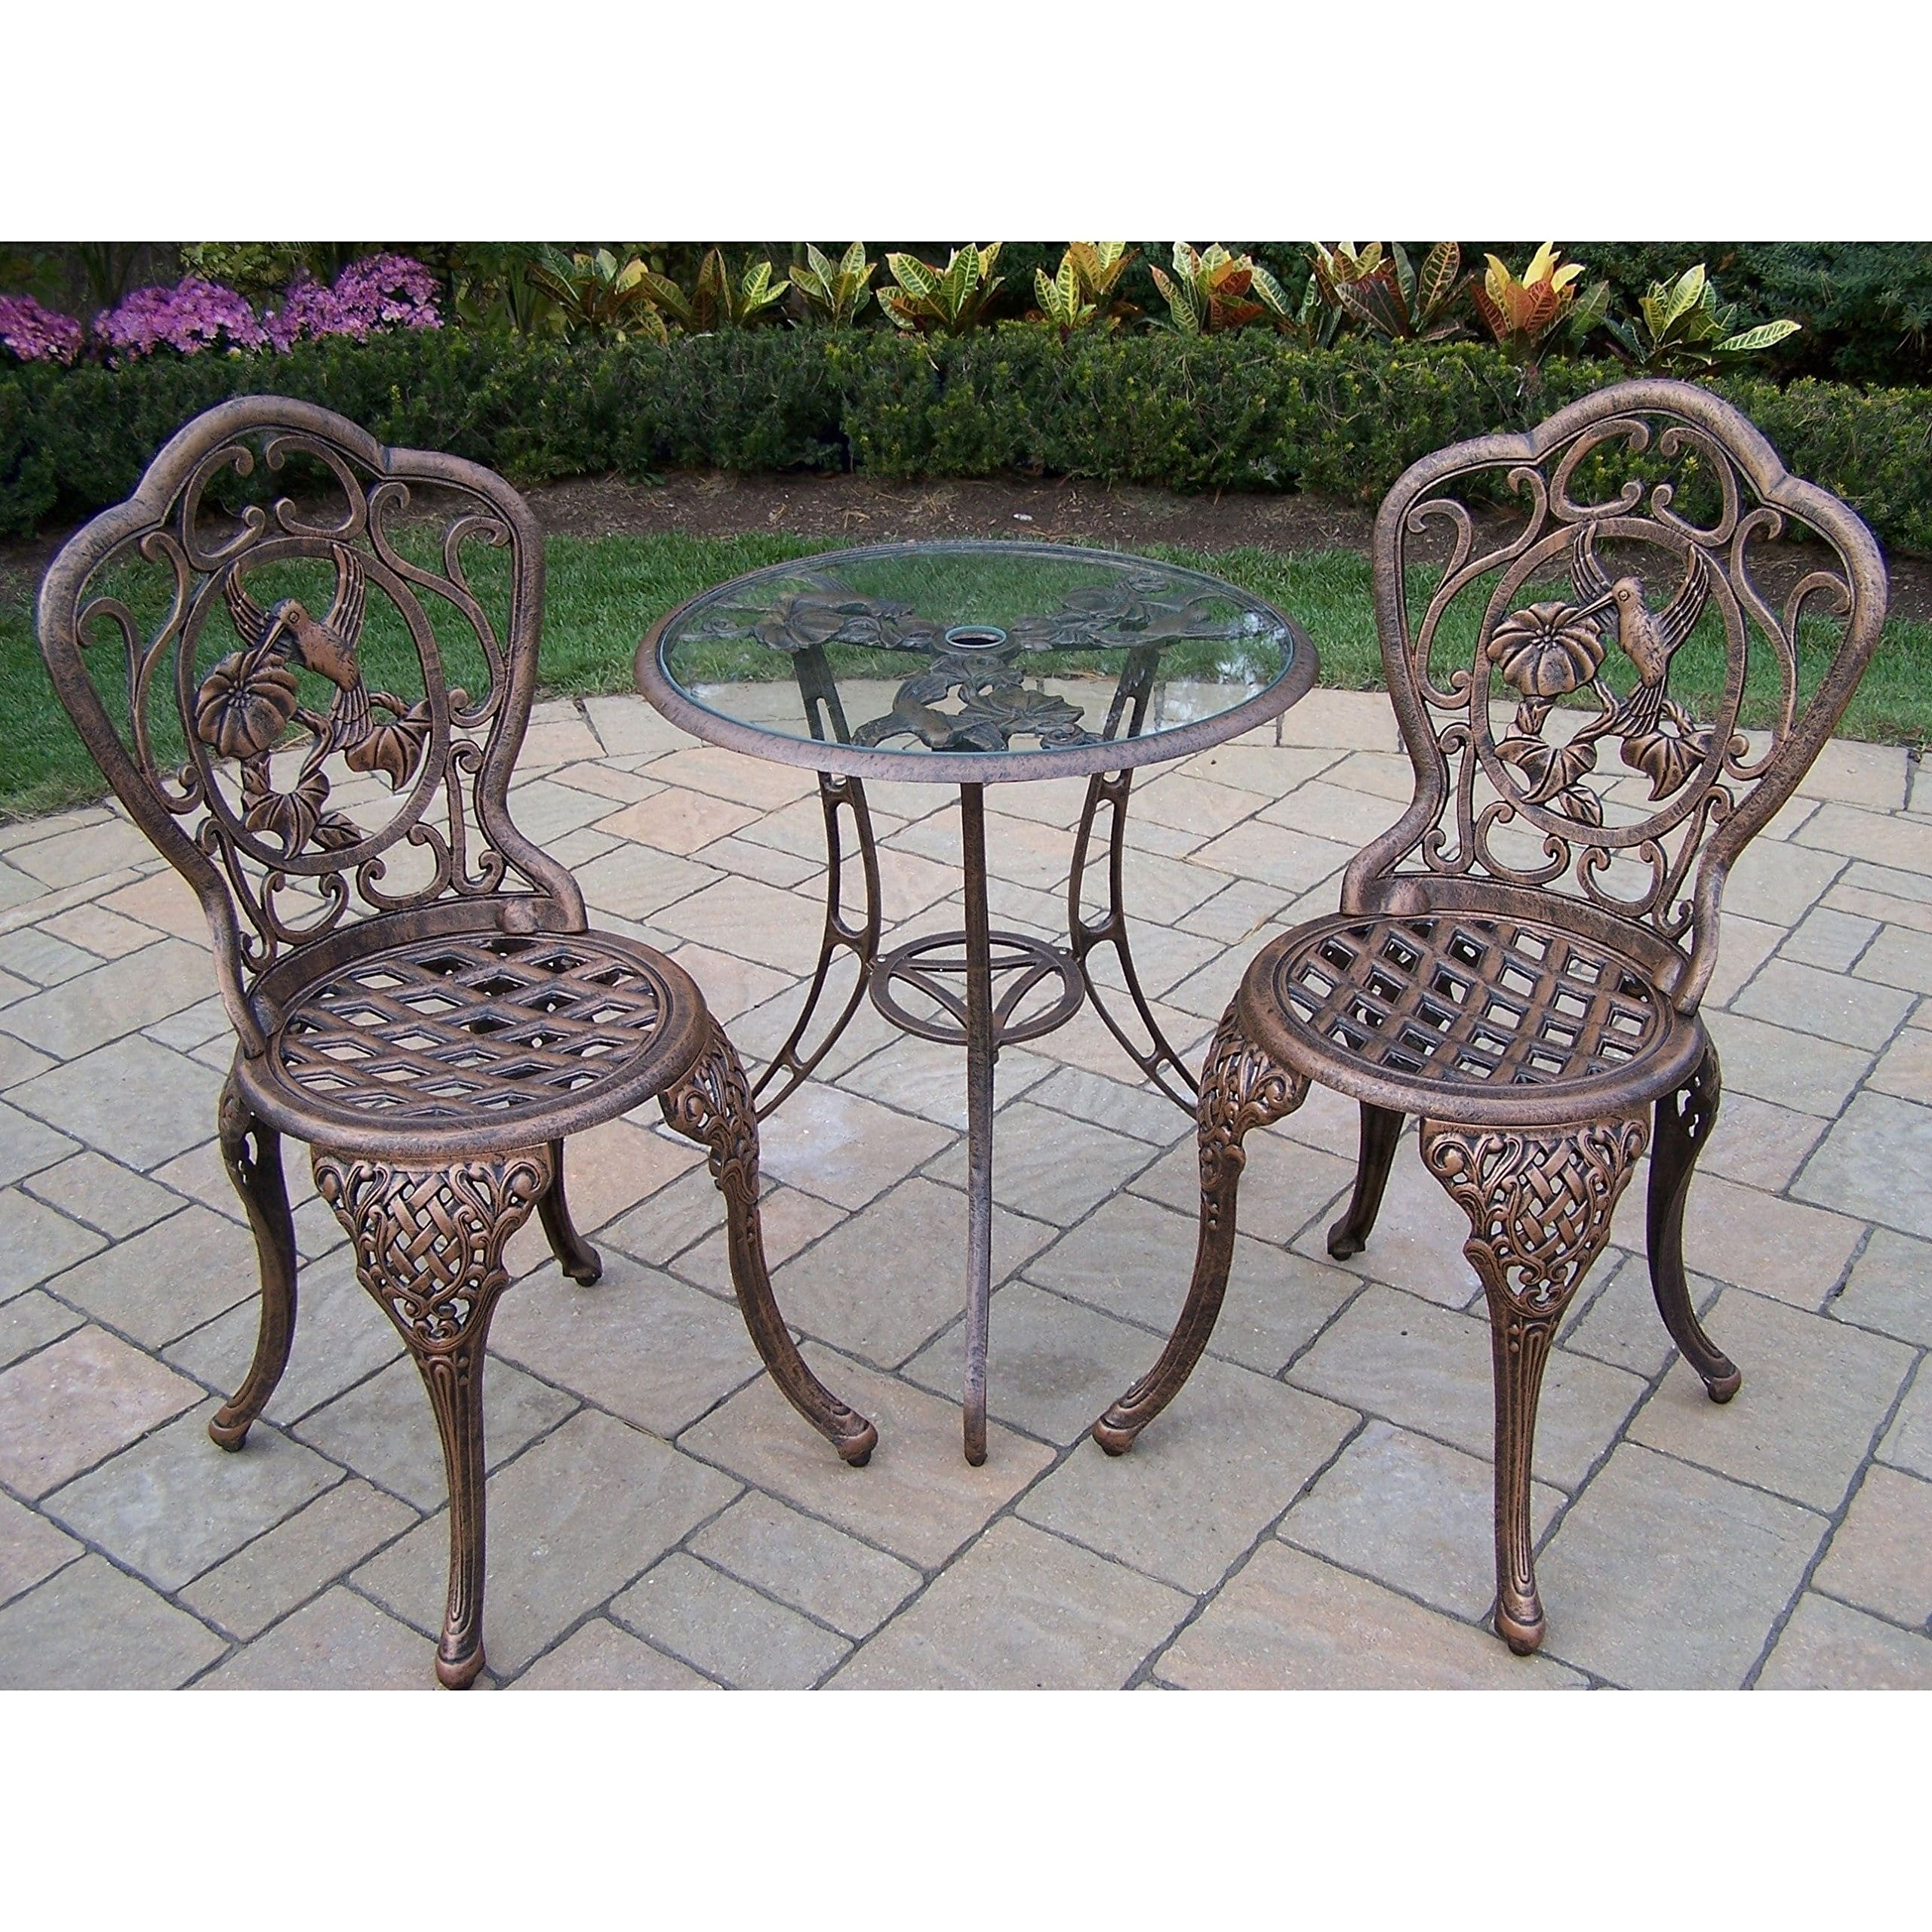 Get quotations · oakland living corporation lattice 3 piece bistro set with 24 inch tempered glass top